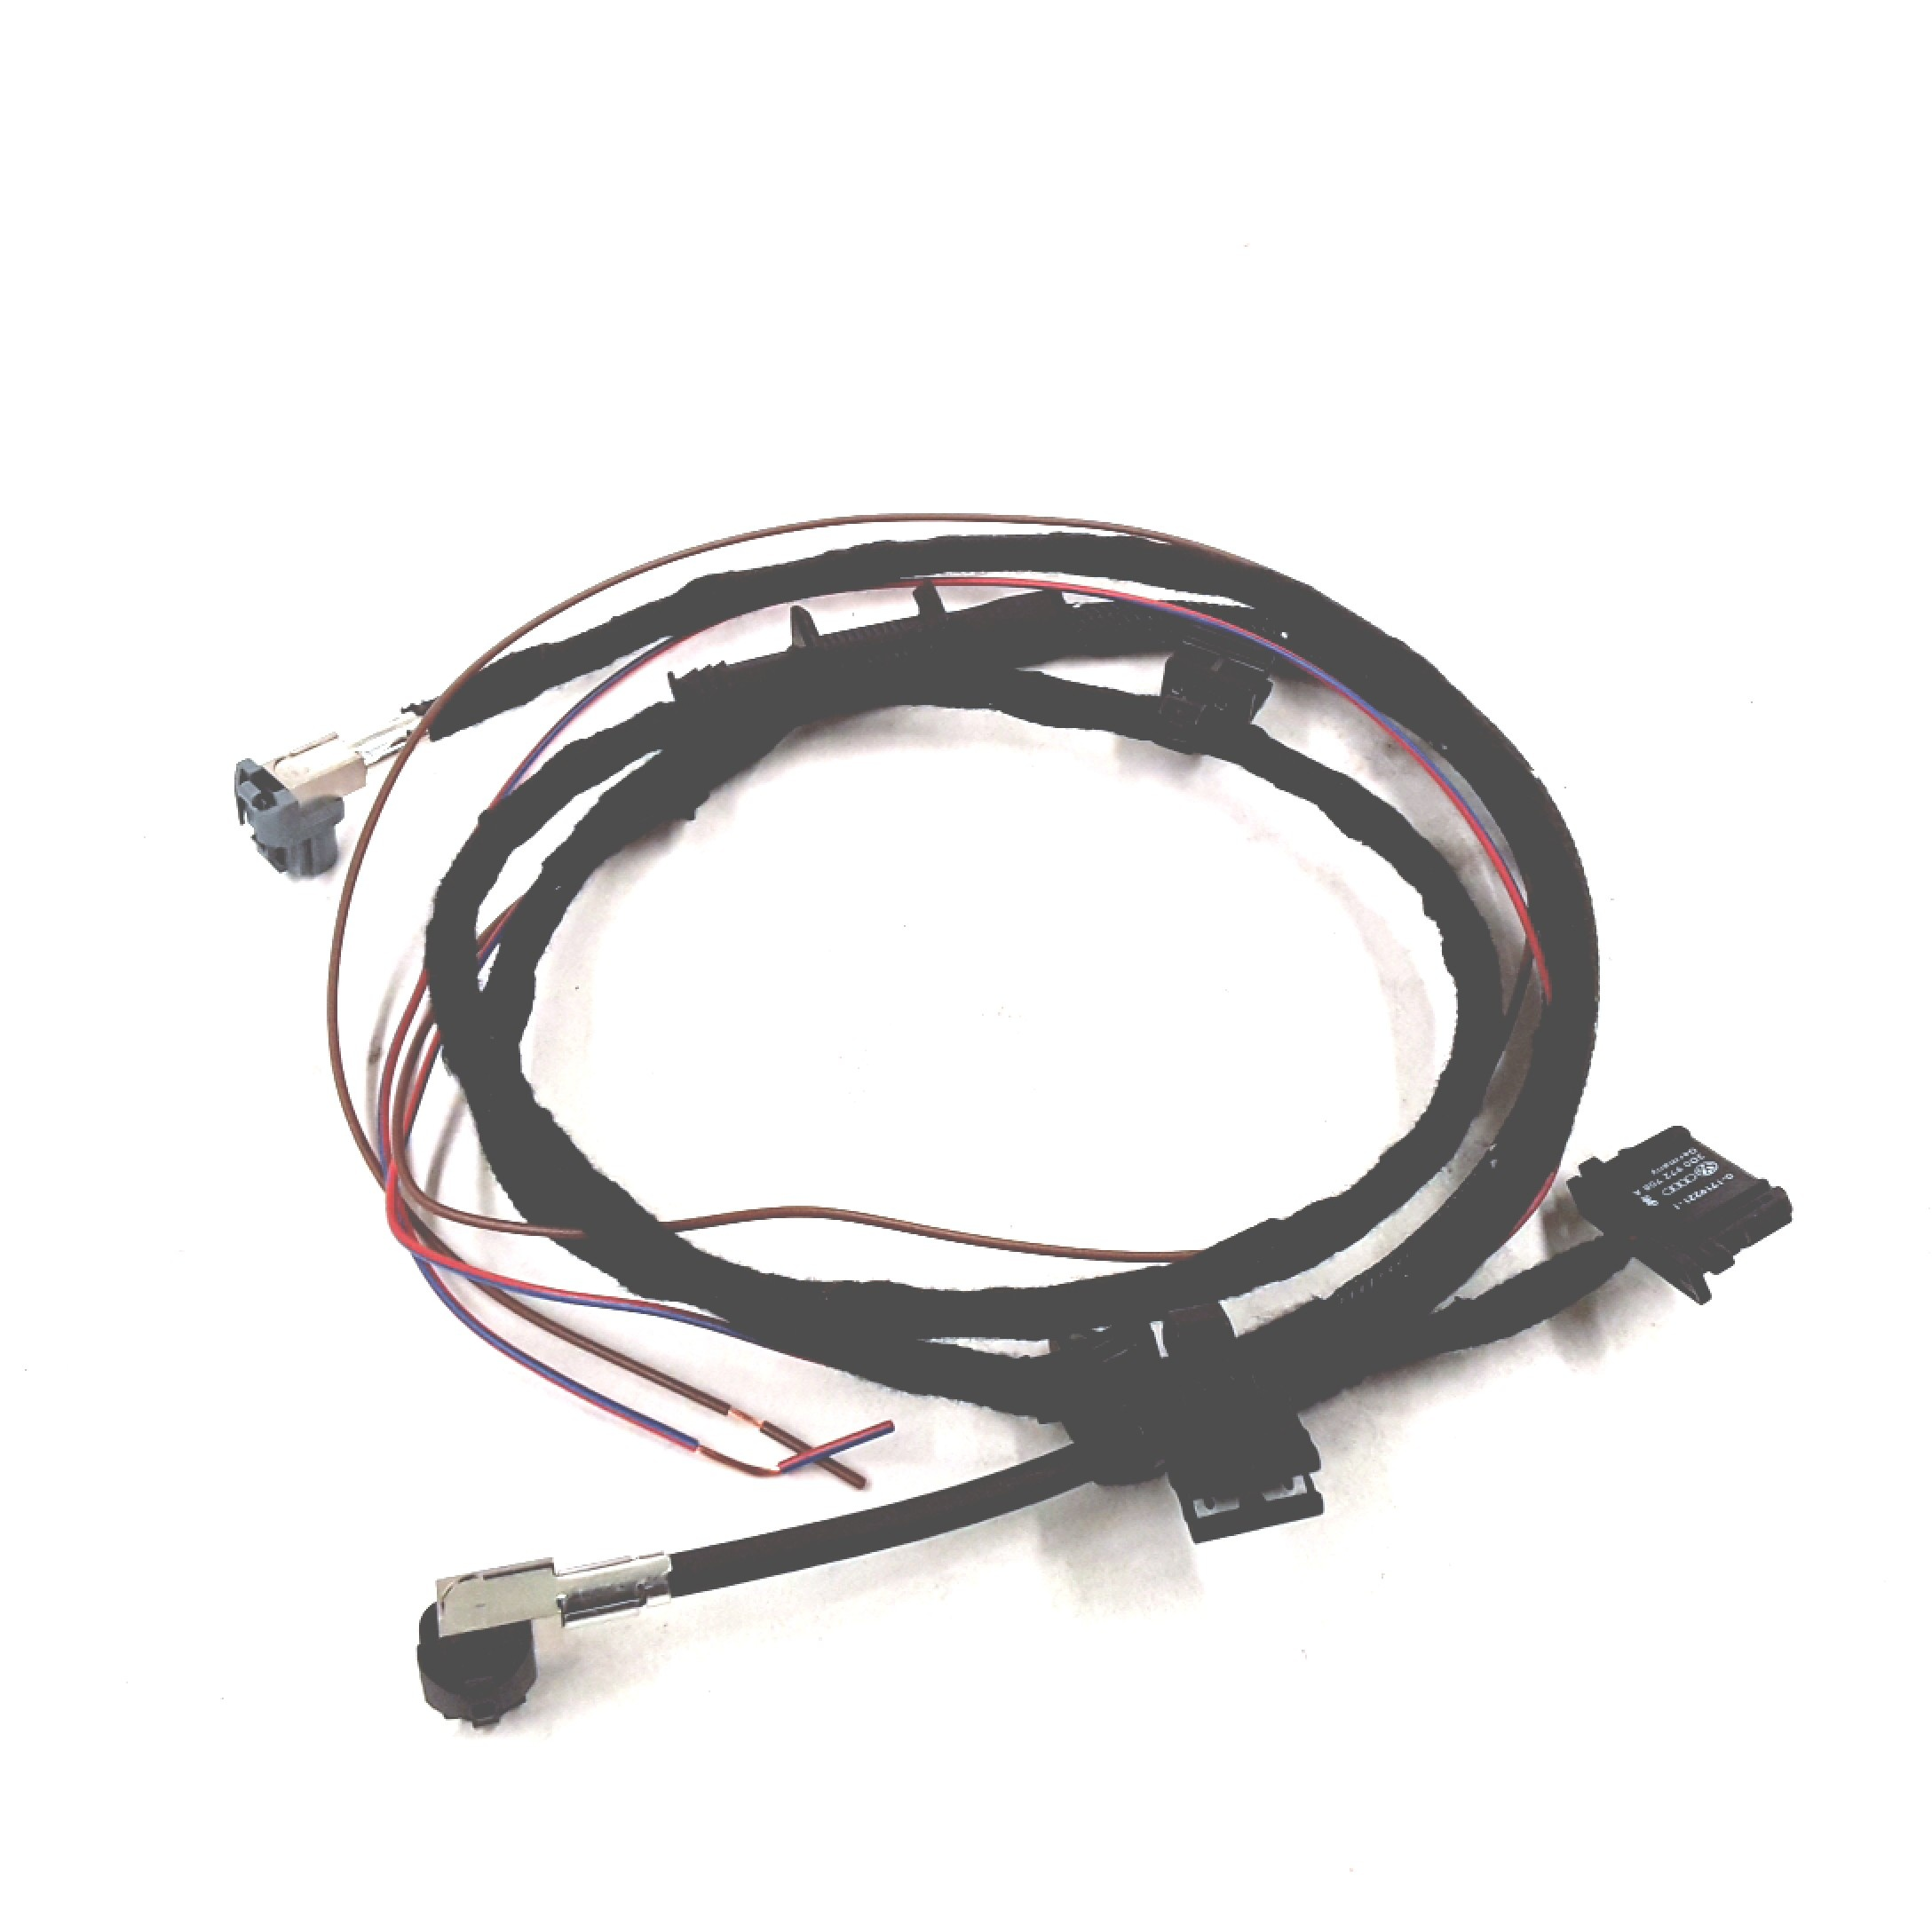 Audi A7 Display Unit Adapter Wiring Harness  Adapter